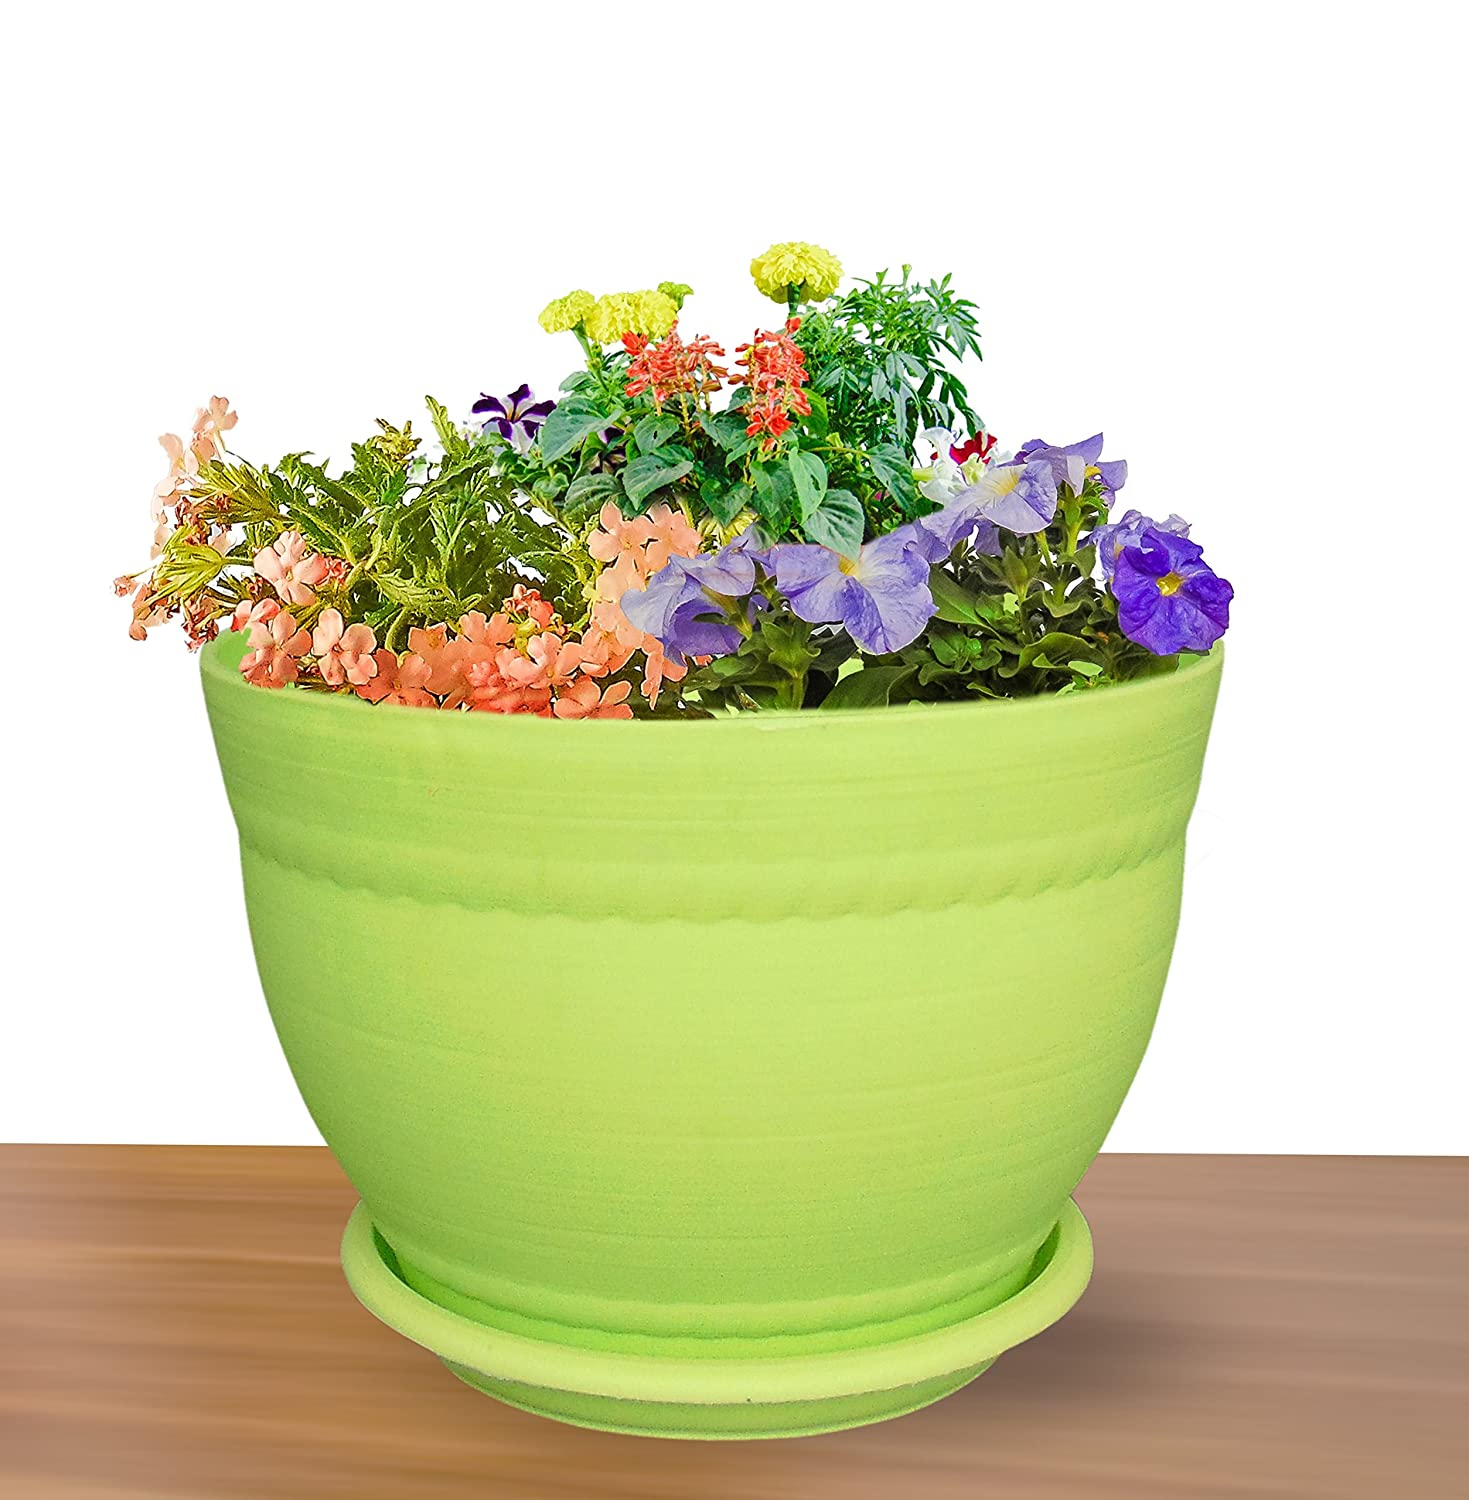 Livewell Green Elegant Indoor Flower Pot Corner Stand 28.5 Inch Tall ...